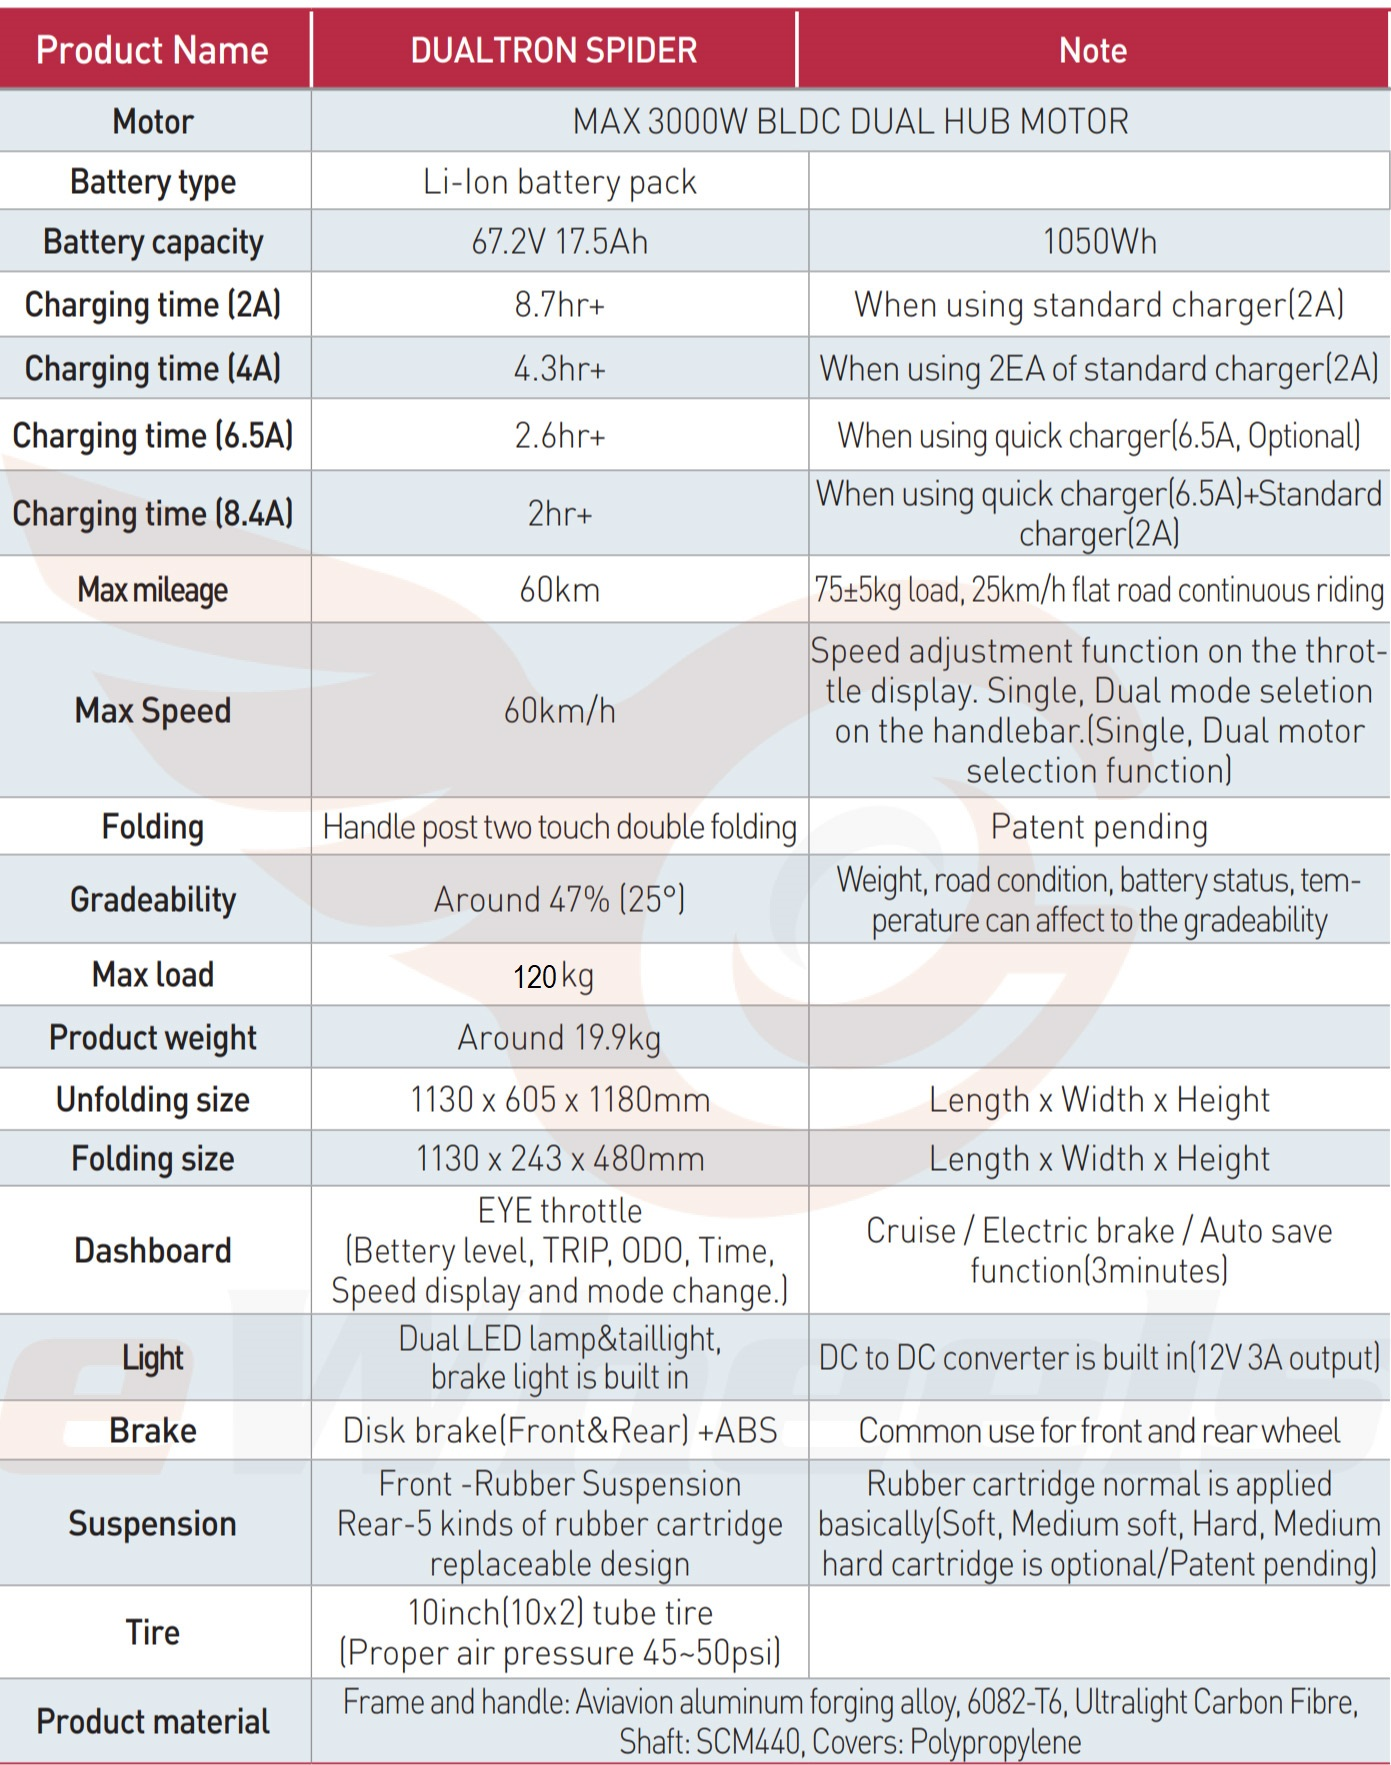 Dualtron Spider Technical Specifications